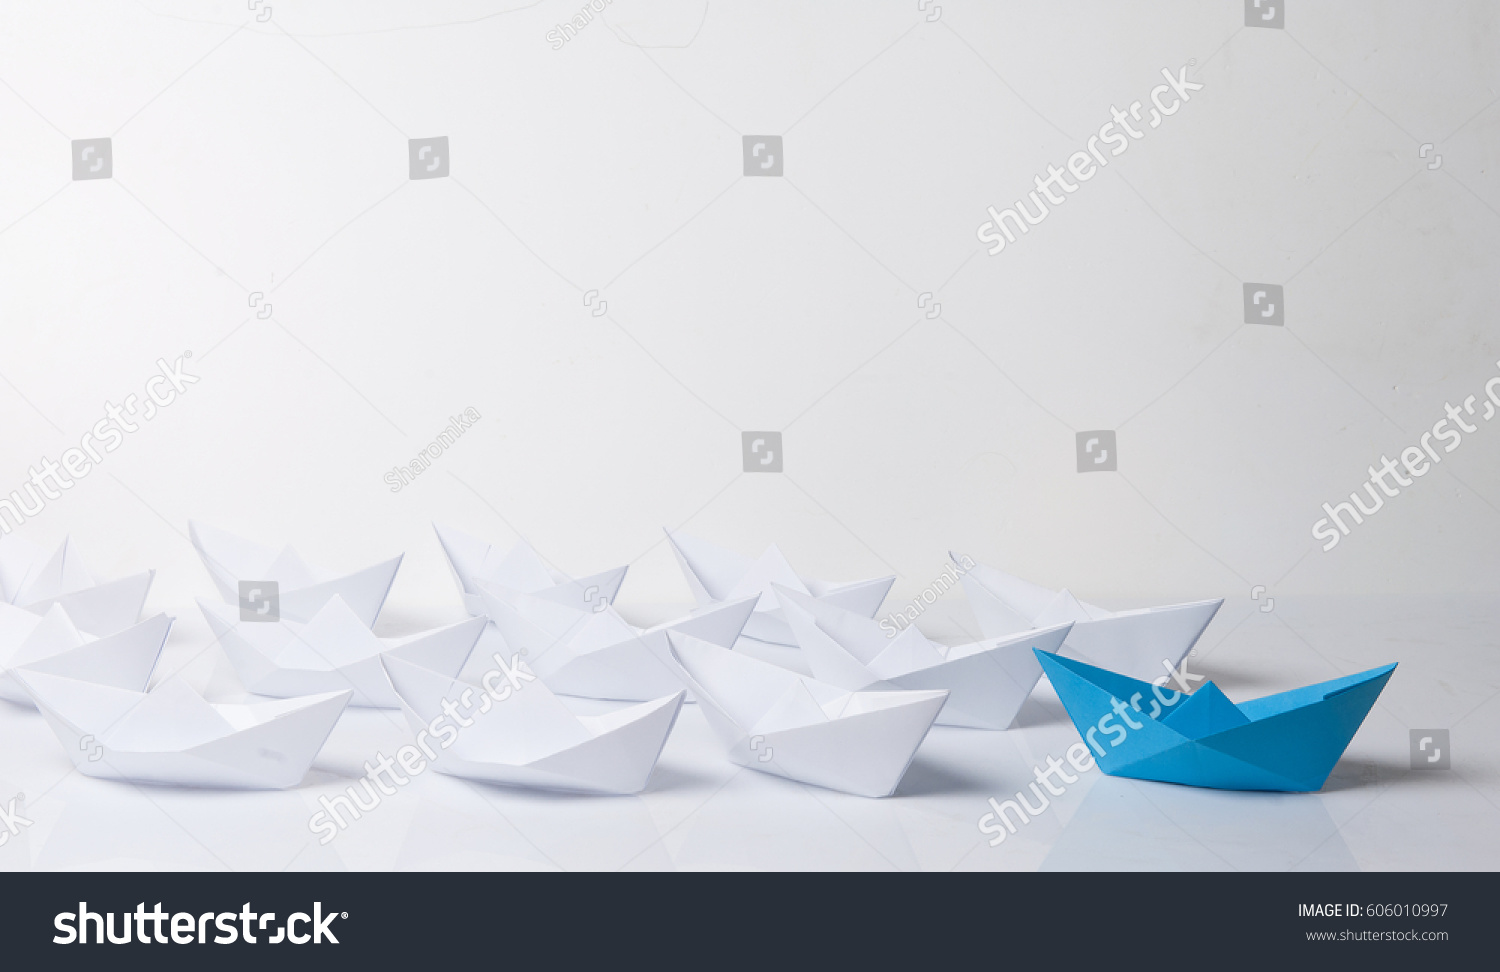 Leadership Concept Blue Paper Boat Leading Among White Ships Set